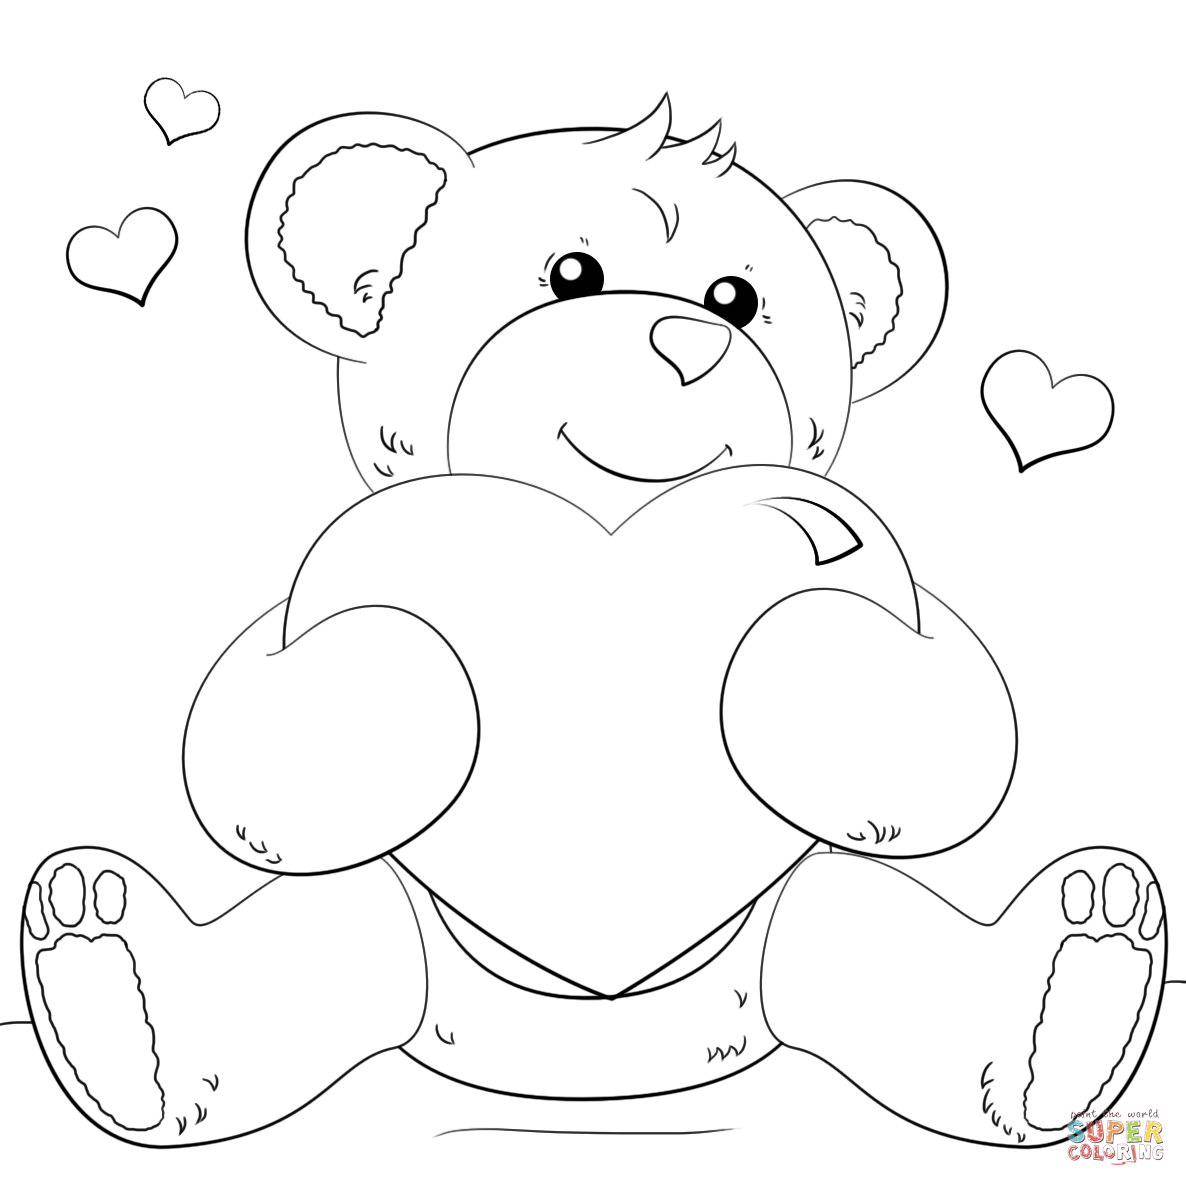 heart color pages heart and key coloring pages at getcoloringscom free color pages heart